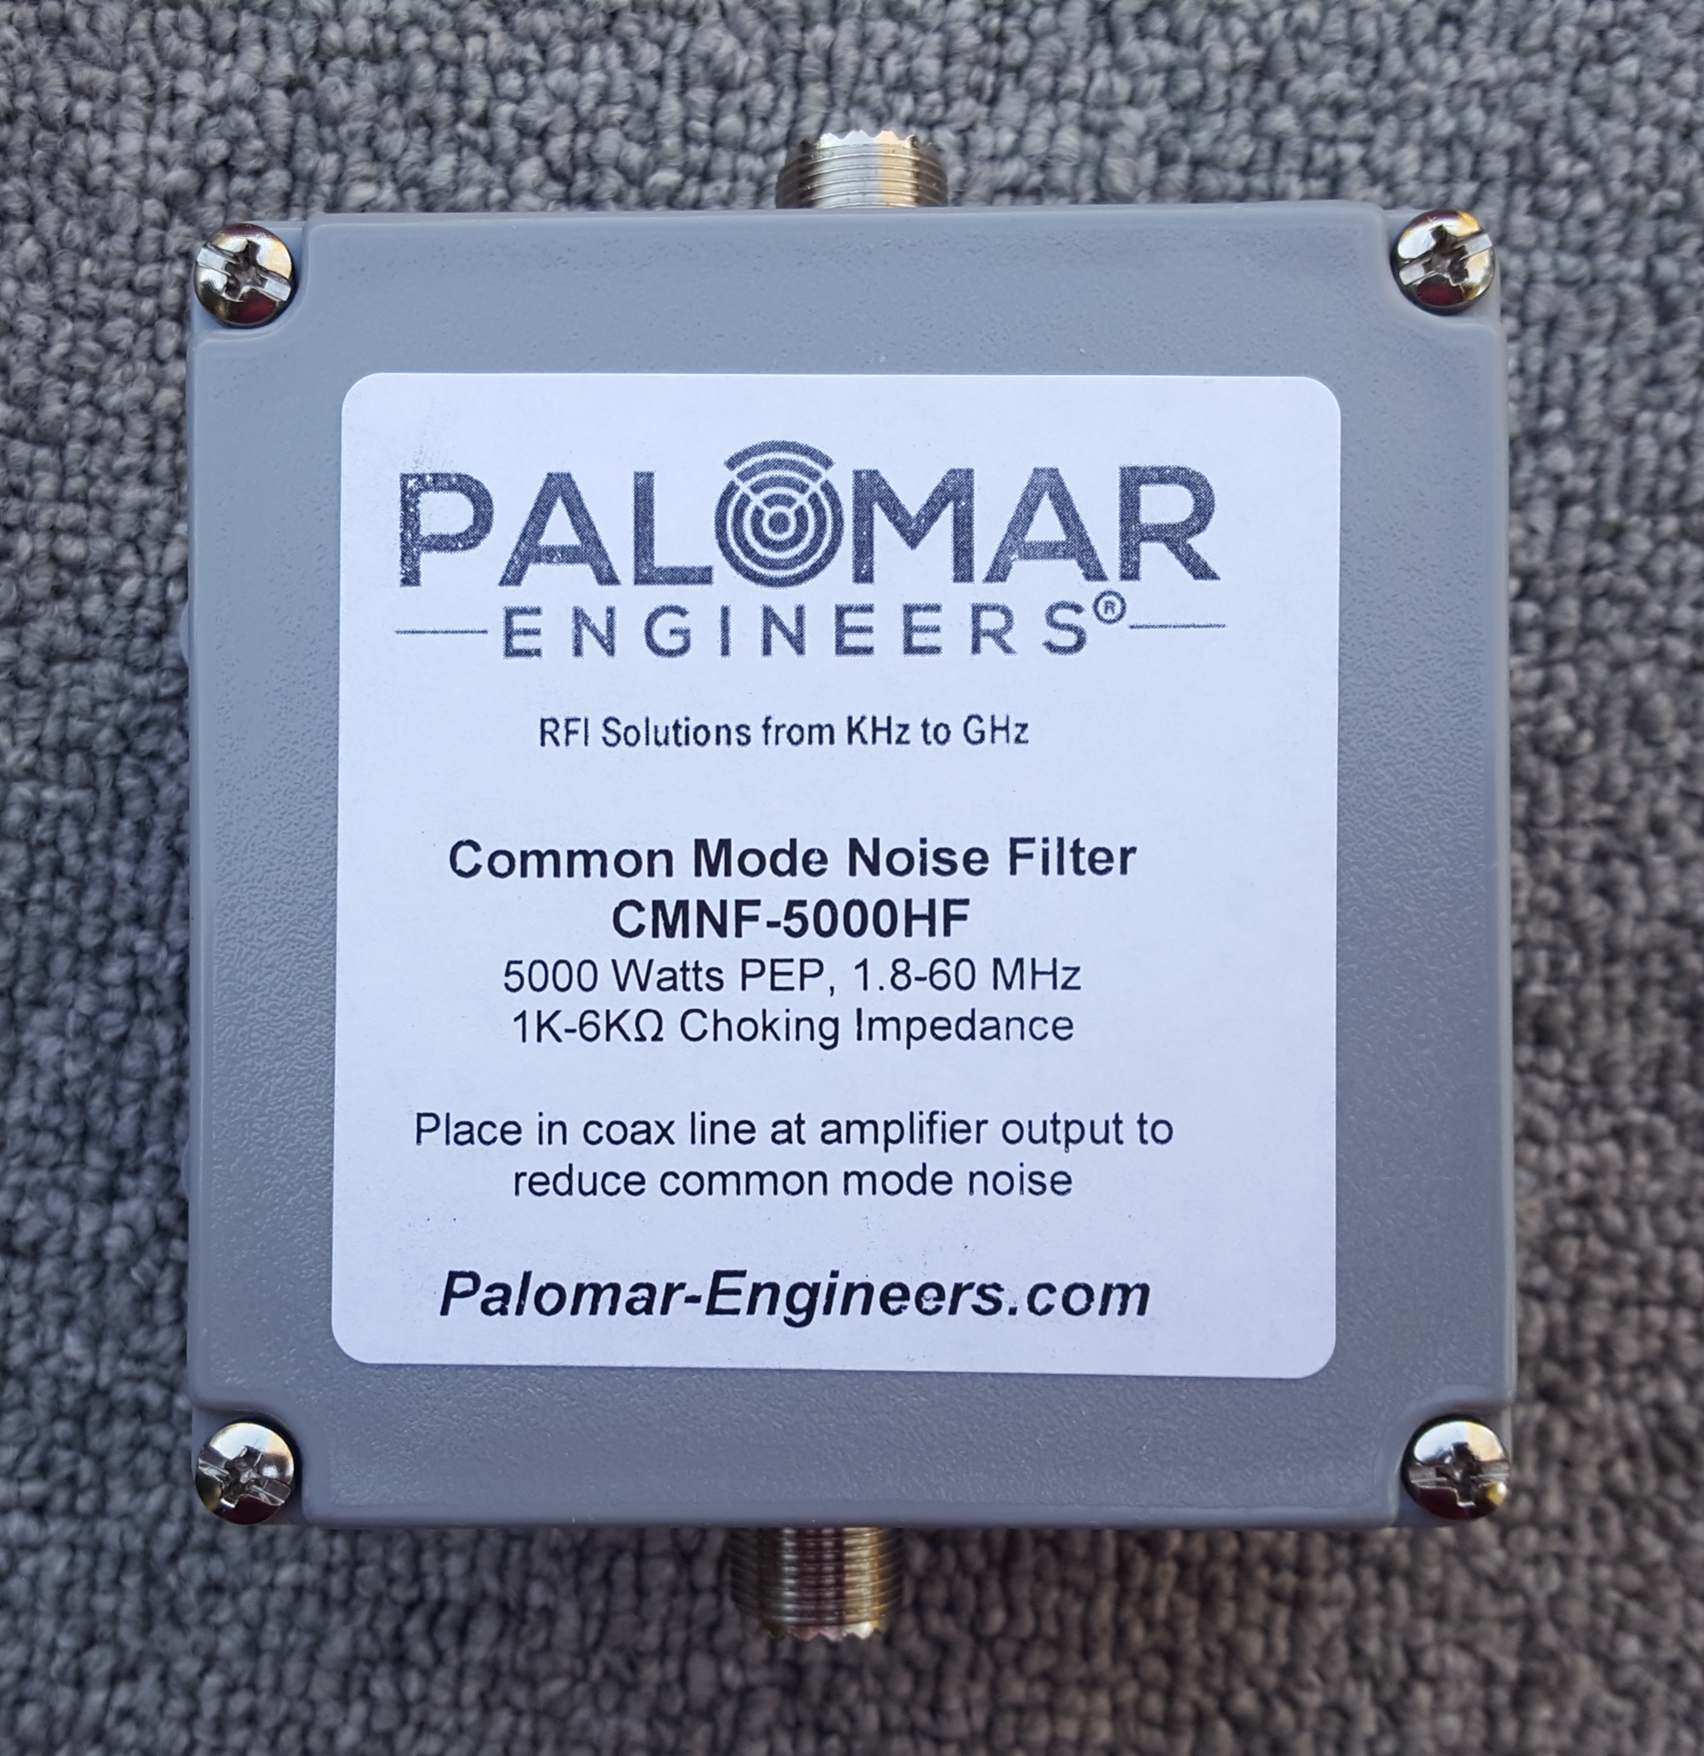 Coax Common Mode Noise Filter - 5000 Watts, 1.8-60 MHz CMNF-5000HF